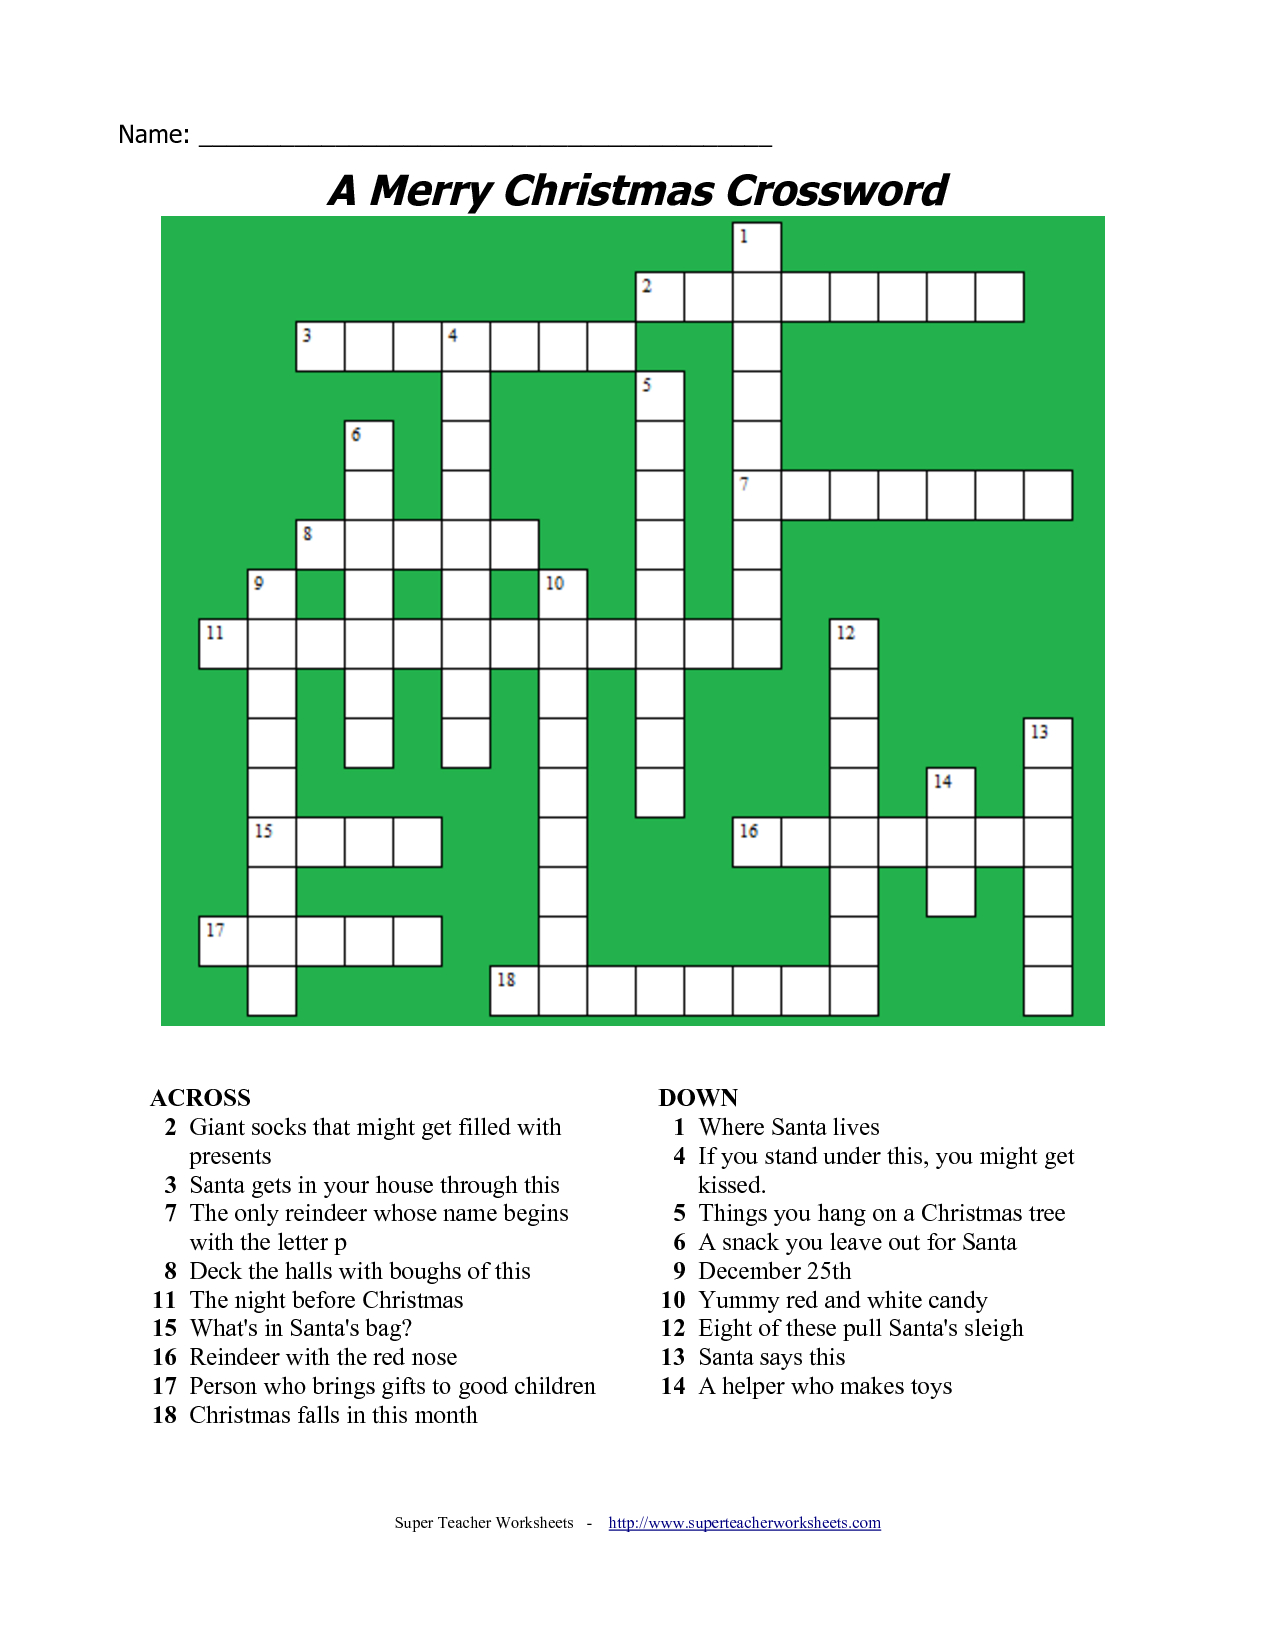 20 Fun Printable Christmas Crossword Puzzles | Kittybabylove - Christmas Printable Crossword Puzzles Adults